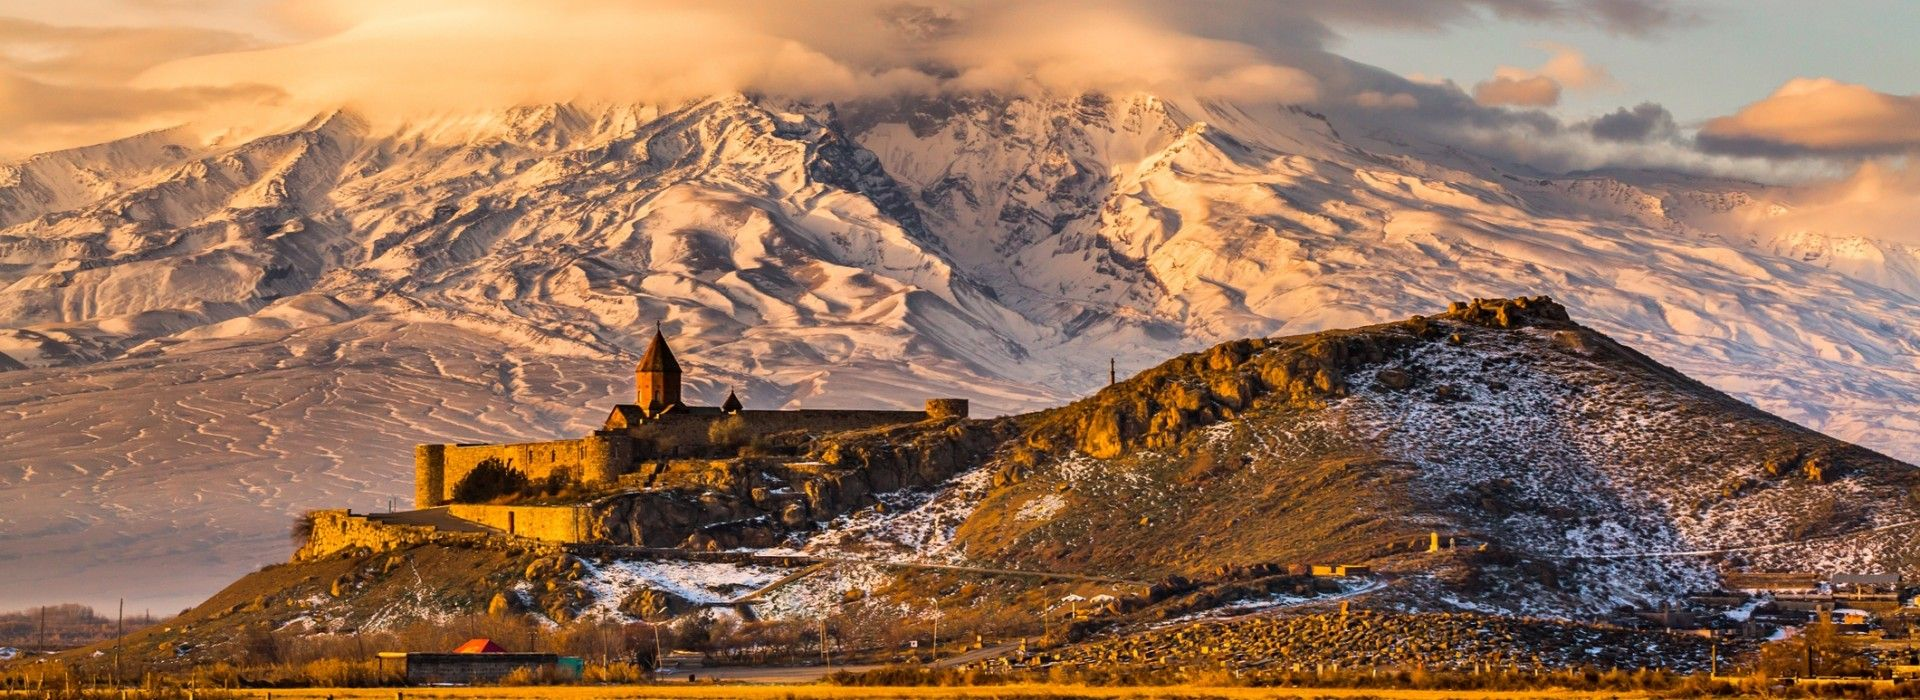 Travelling Armenia - Tours and Trips in Armenia